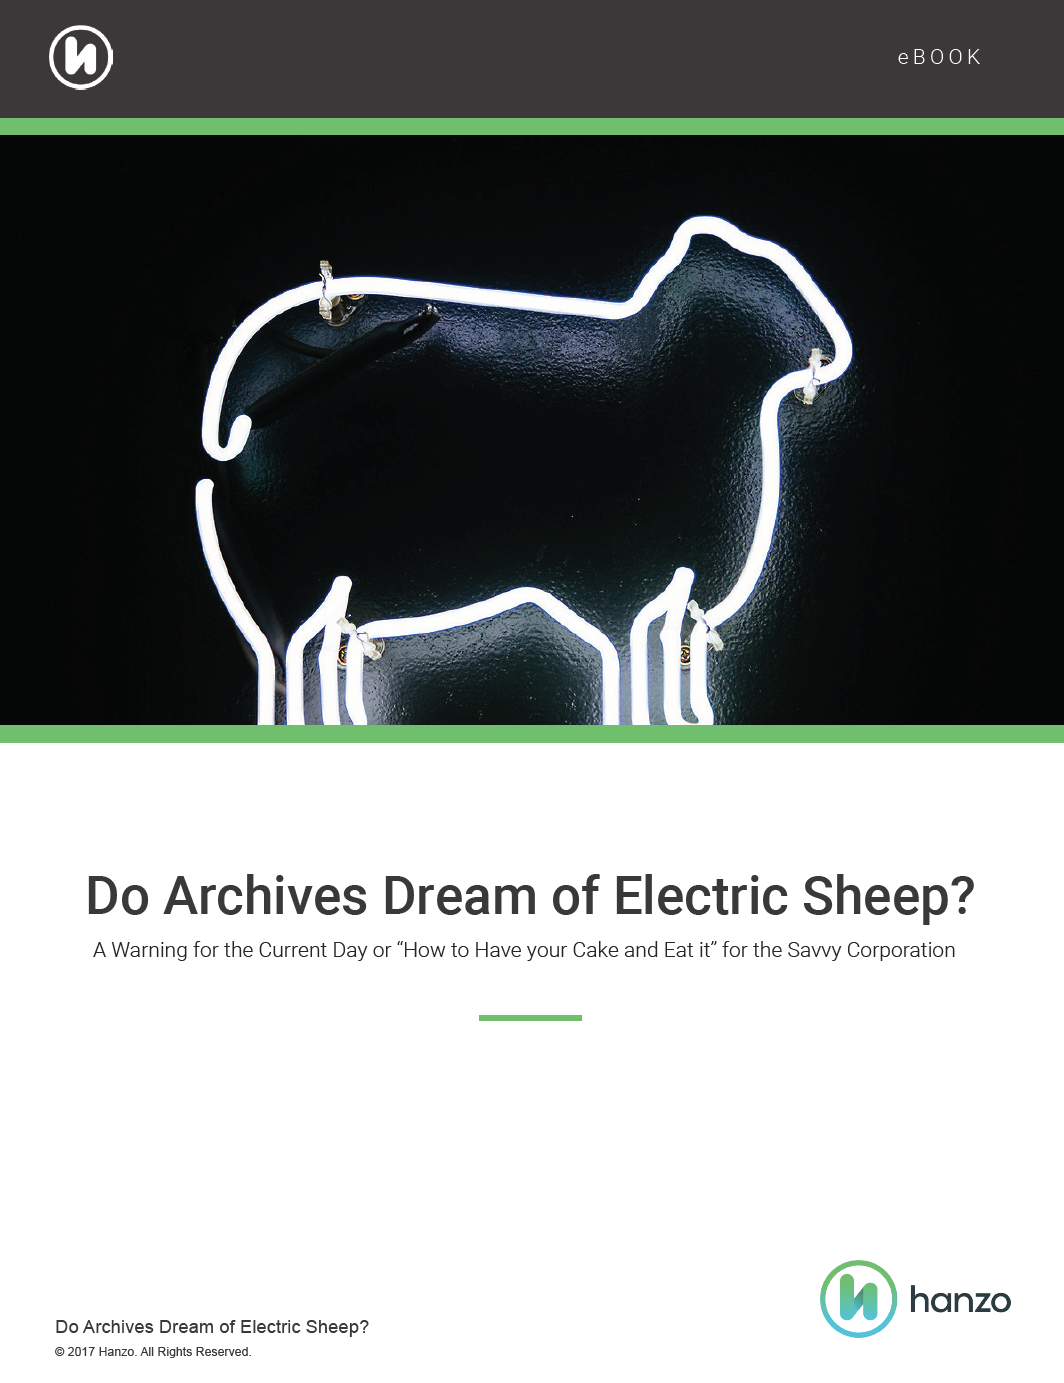 Do Archives Dream of Electric Sheep